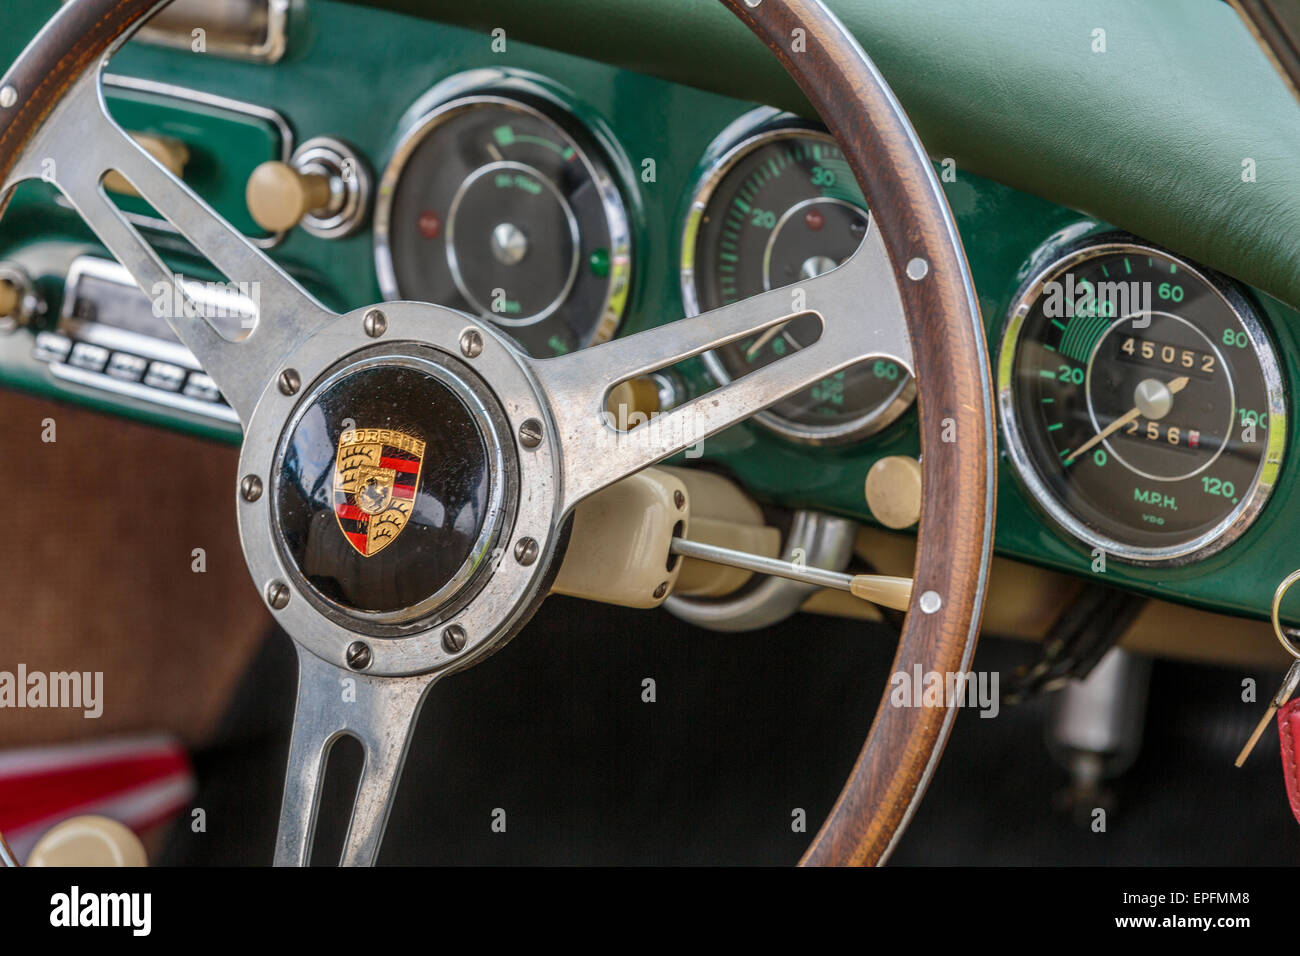 An image of A Porsche 356 steering wheel with green leather dashboard trim - Stock Image